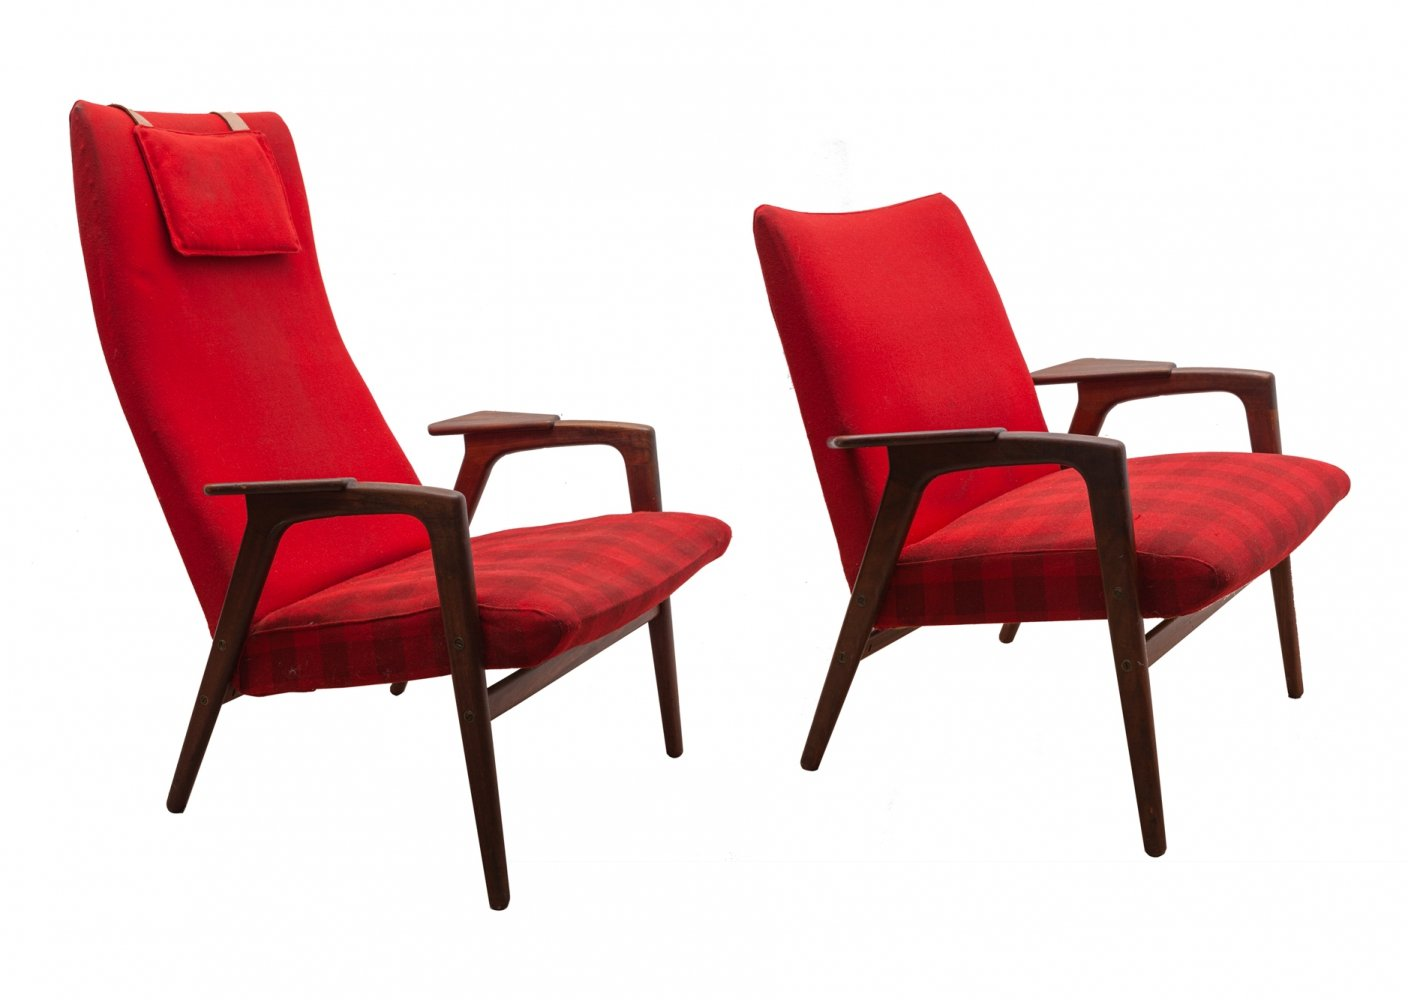 Set of one high back & one low easy chair by Yngve Ekström for Pastoe